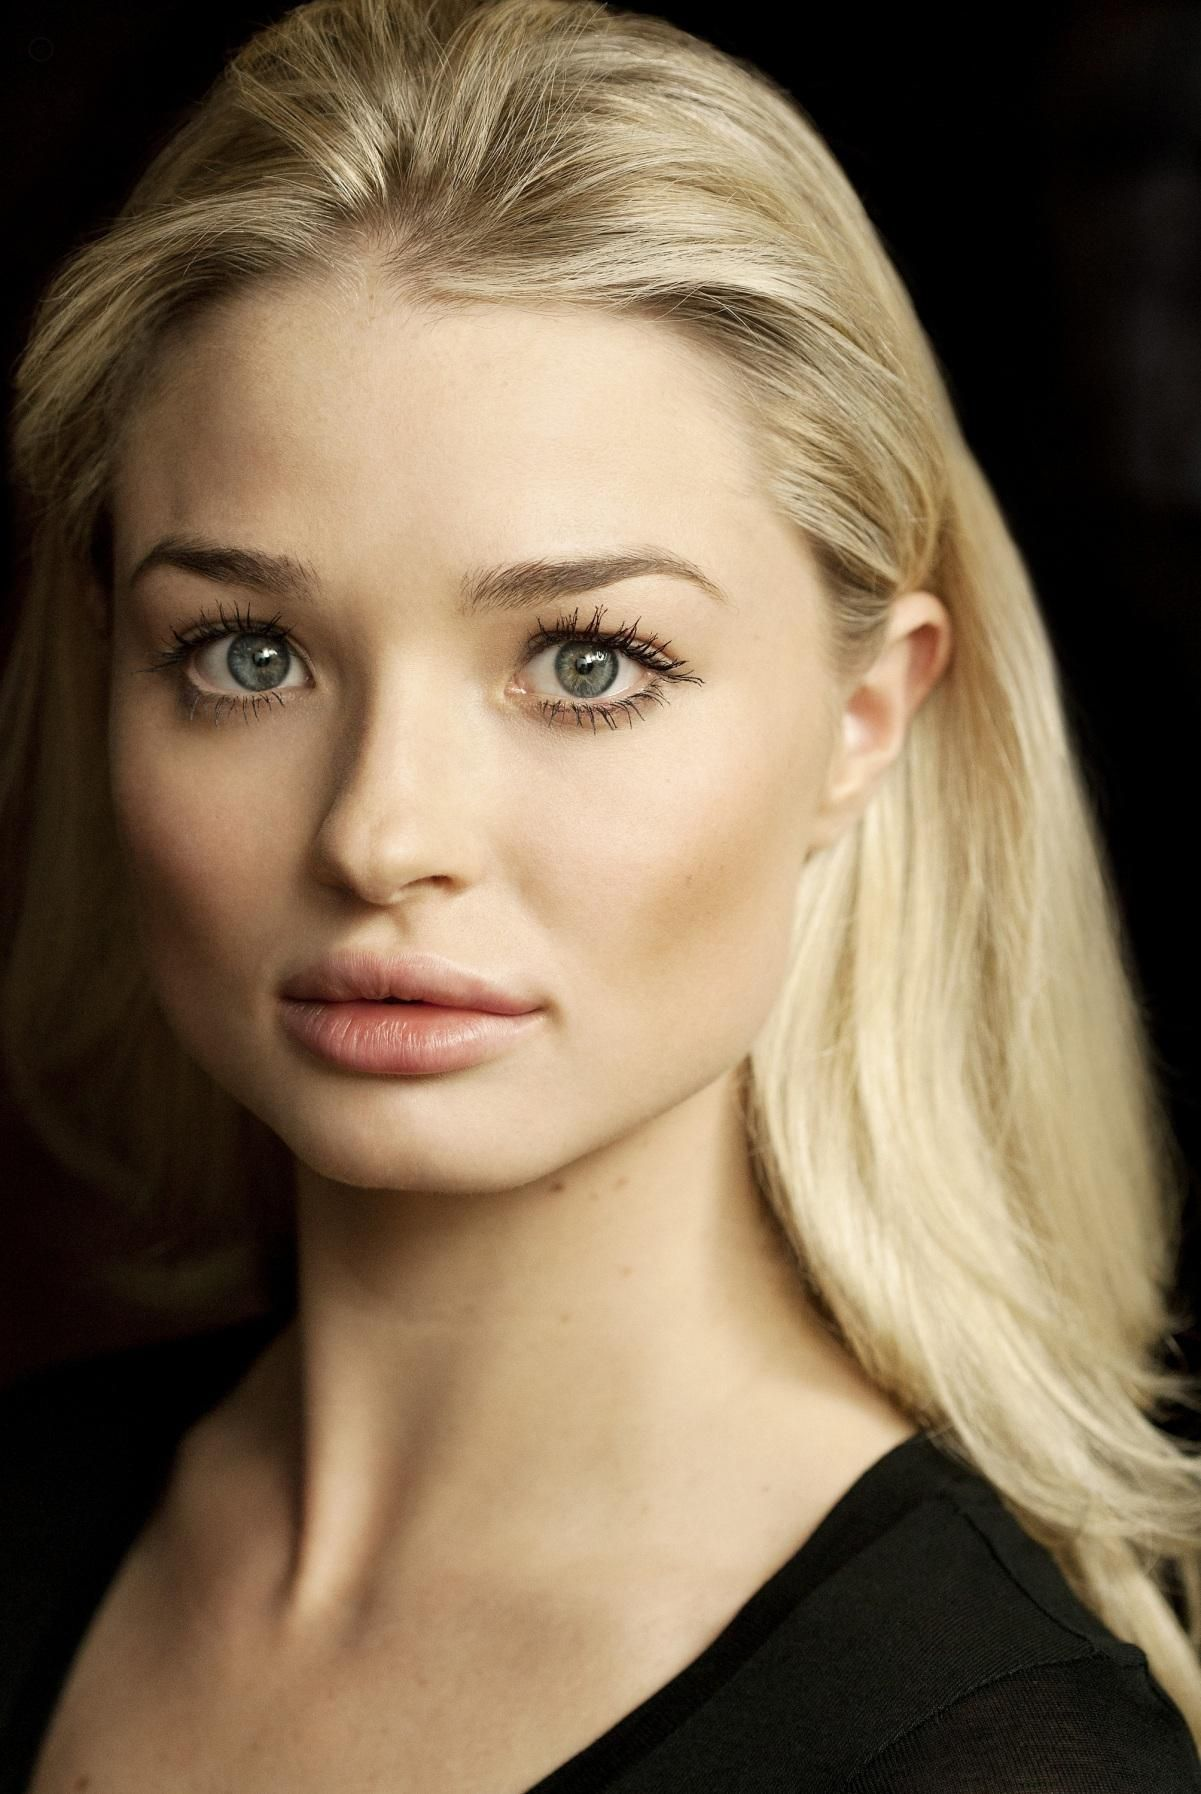 Emma rigby photos pictures stills images wallpapers gallery - Emma Rigby Http Us Cdn281 Fansshare Com Photos